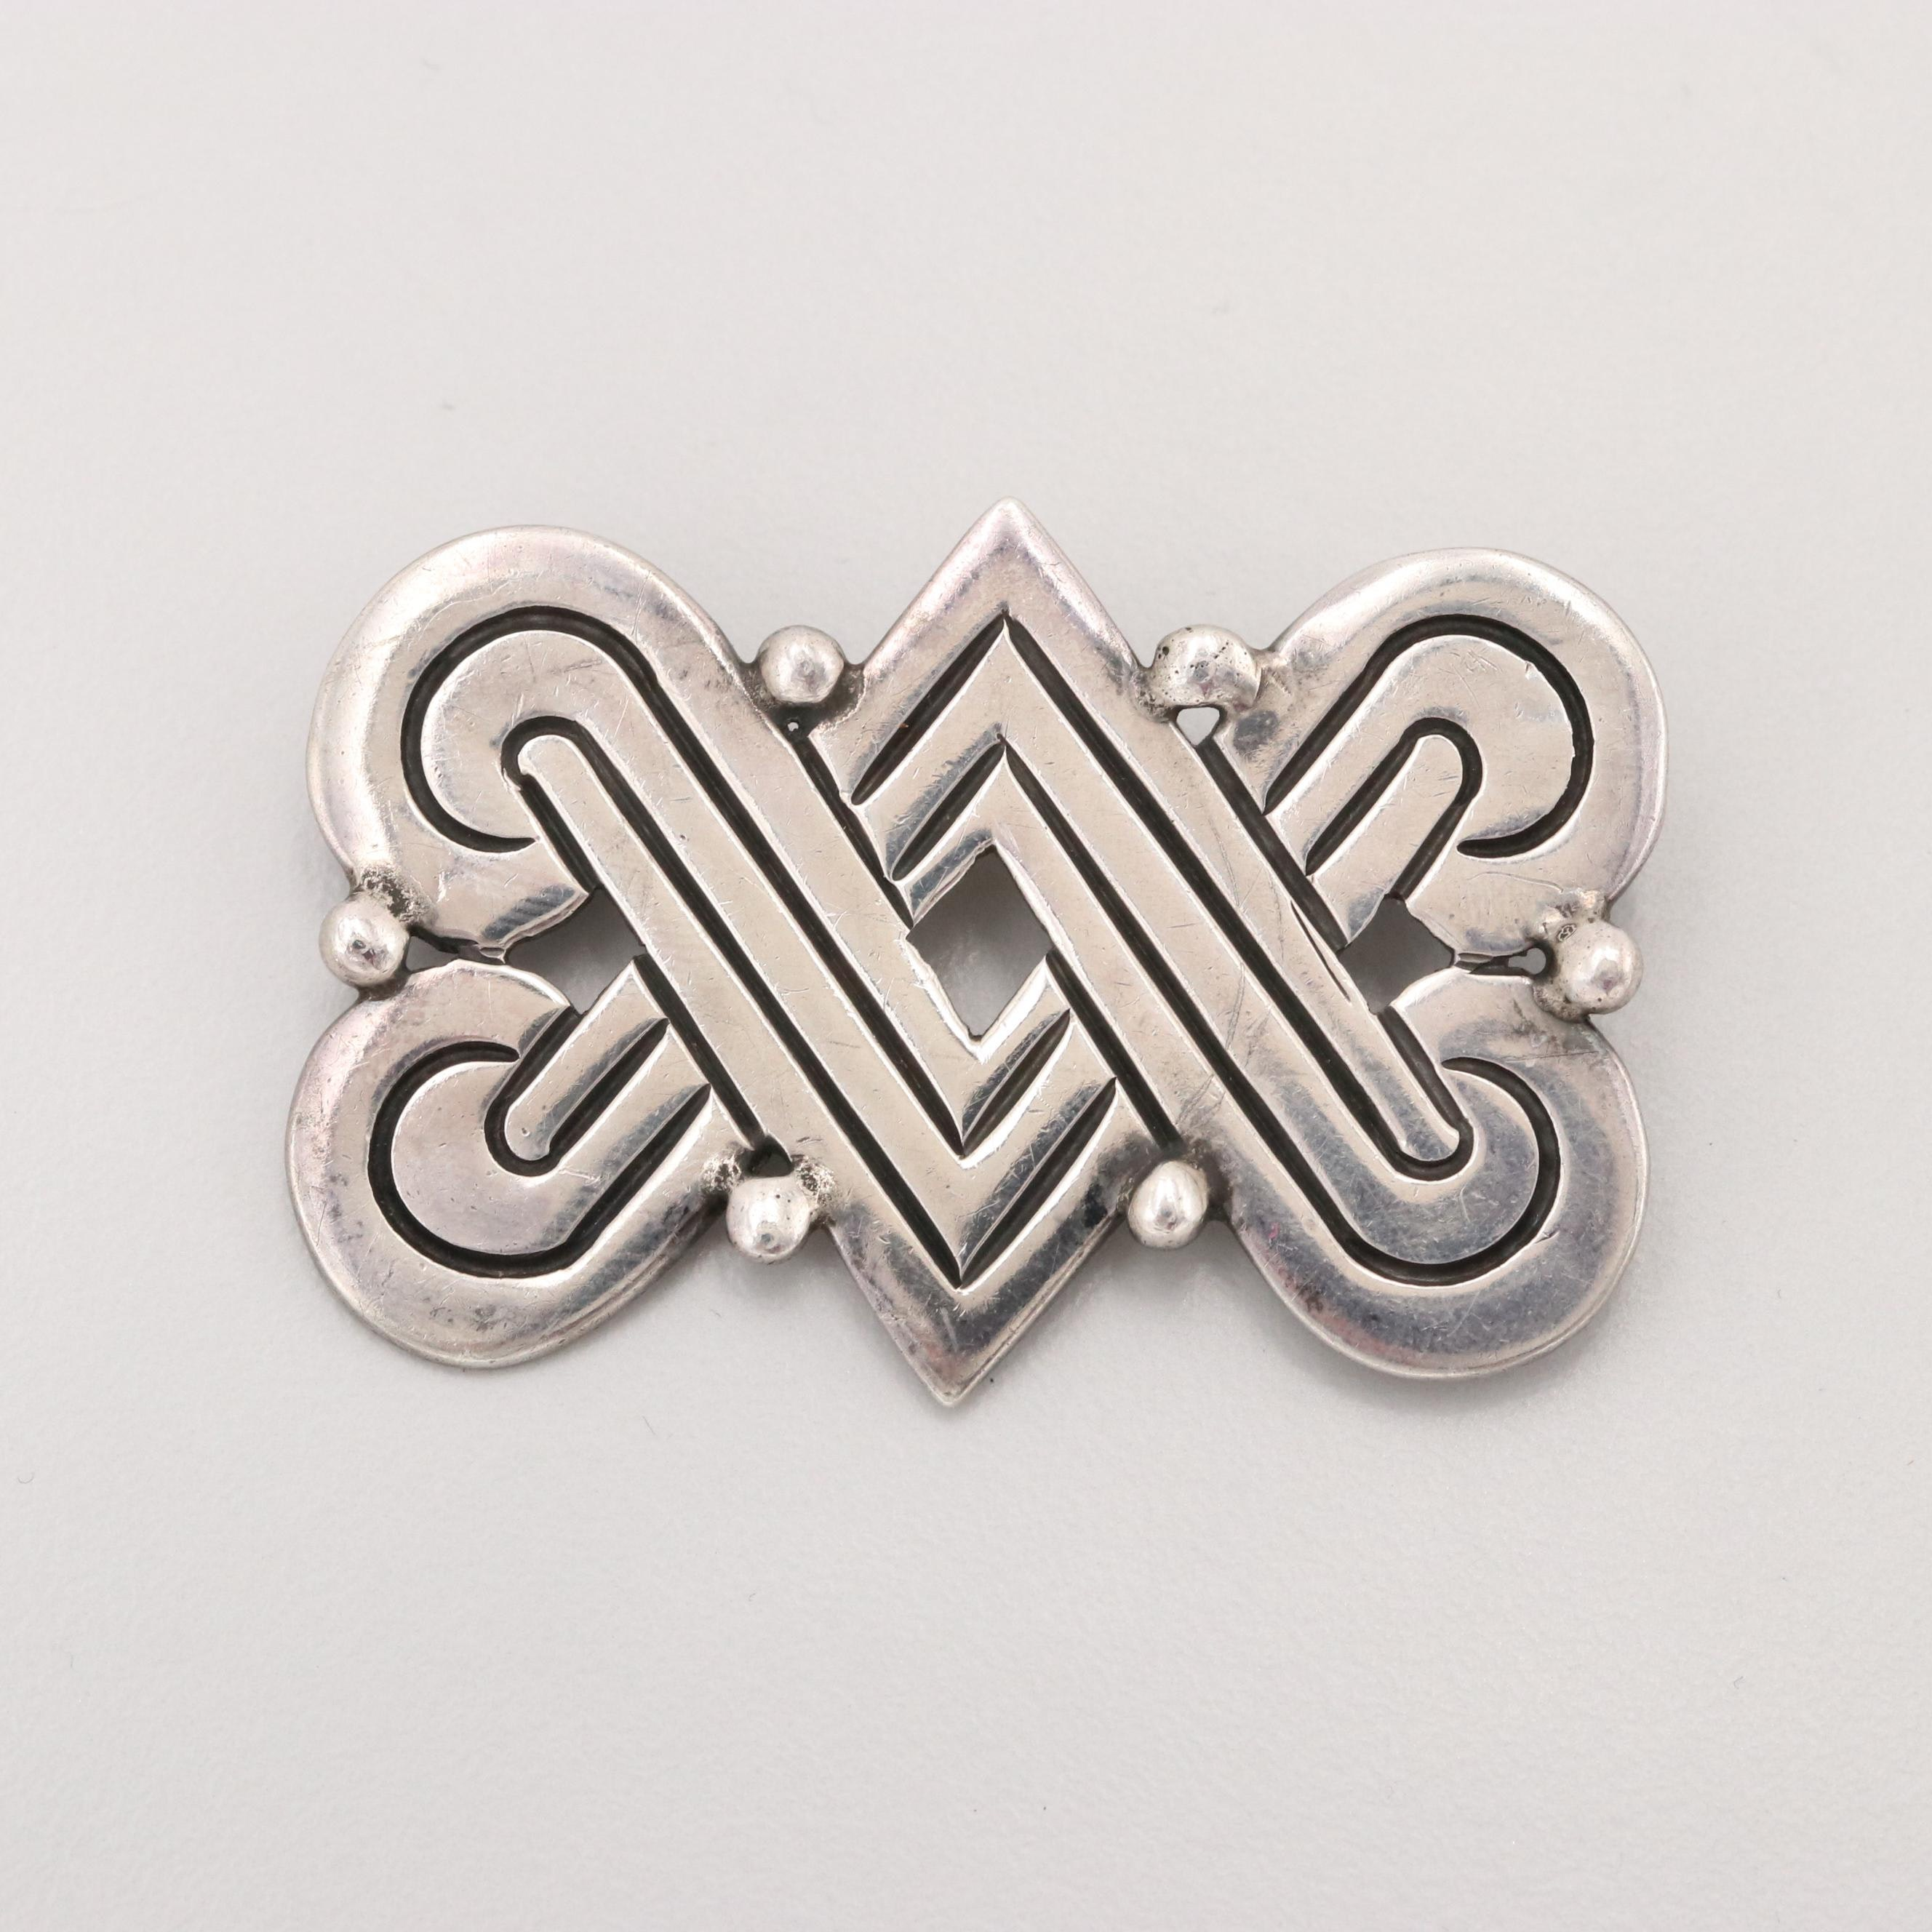 Circa 1940s Early Hector Aguilar 940 Silver Brooch from Taxco, Mexico